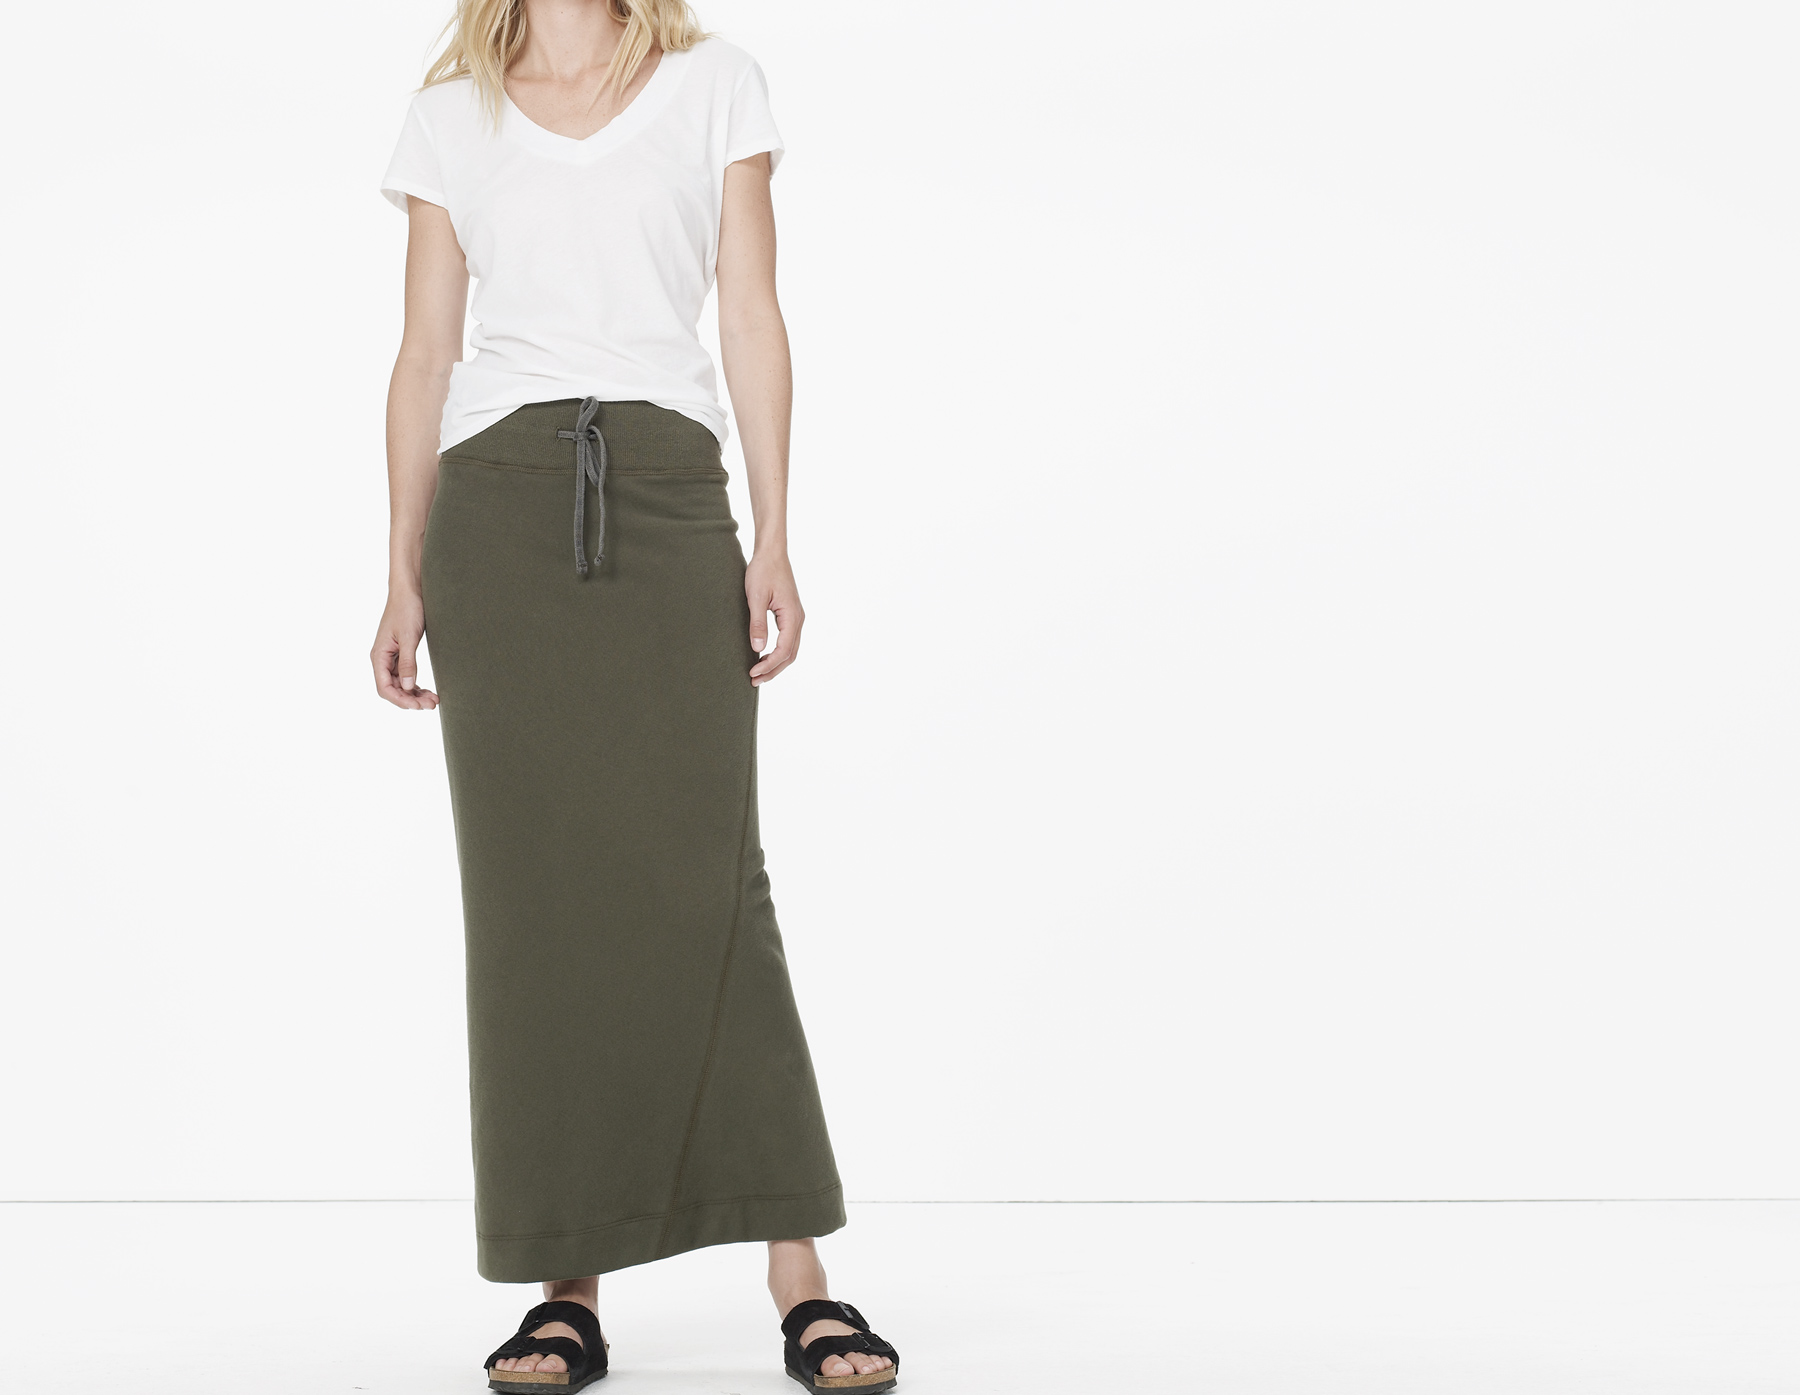 fleece twisted seam maxi skirt in green army